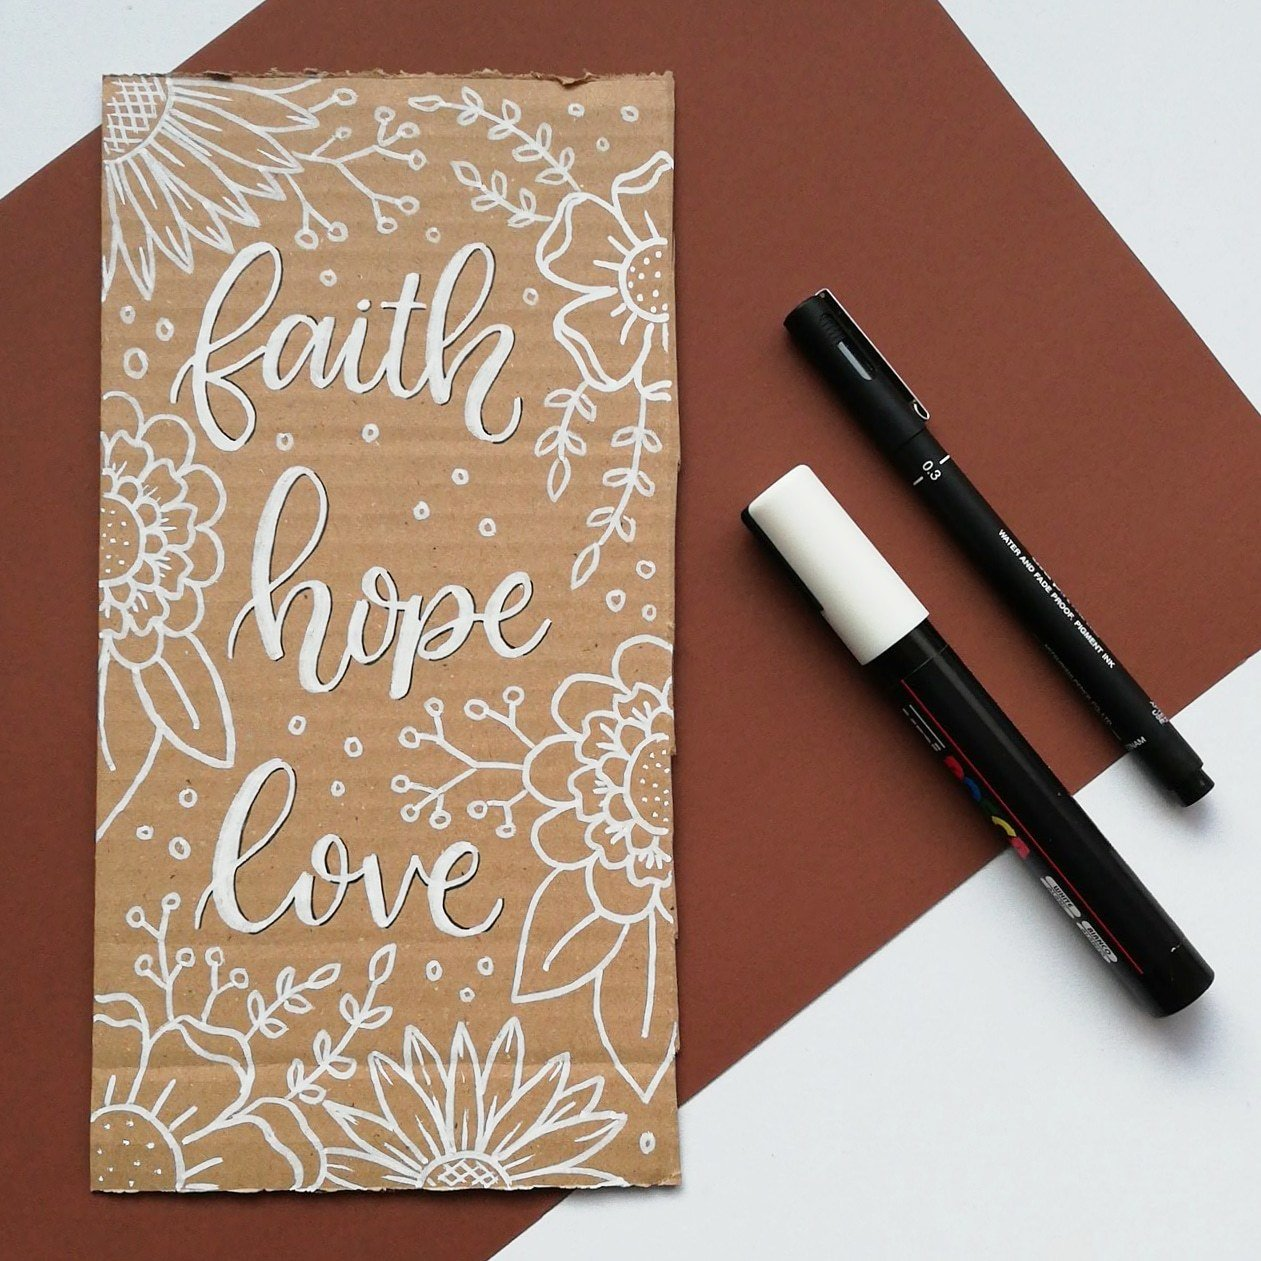 A piece of cardboard on a table with the words Faith, Hope Love lettered in white paint with botanical drawings around it. 2 pends on teh table next to the card.